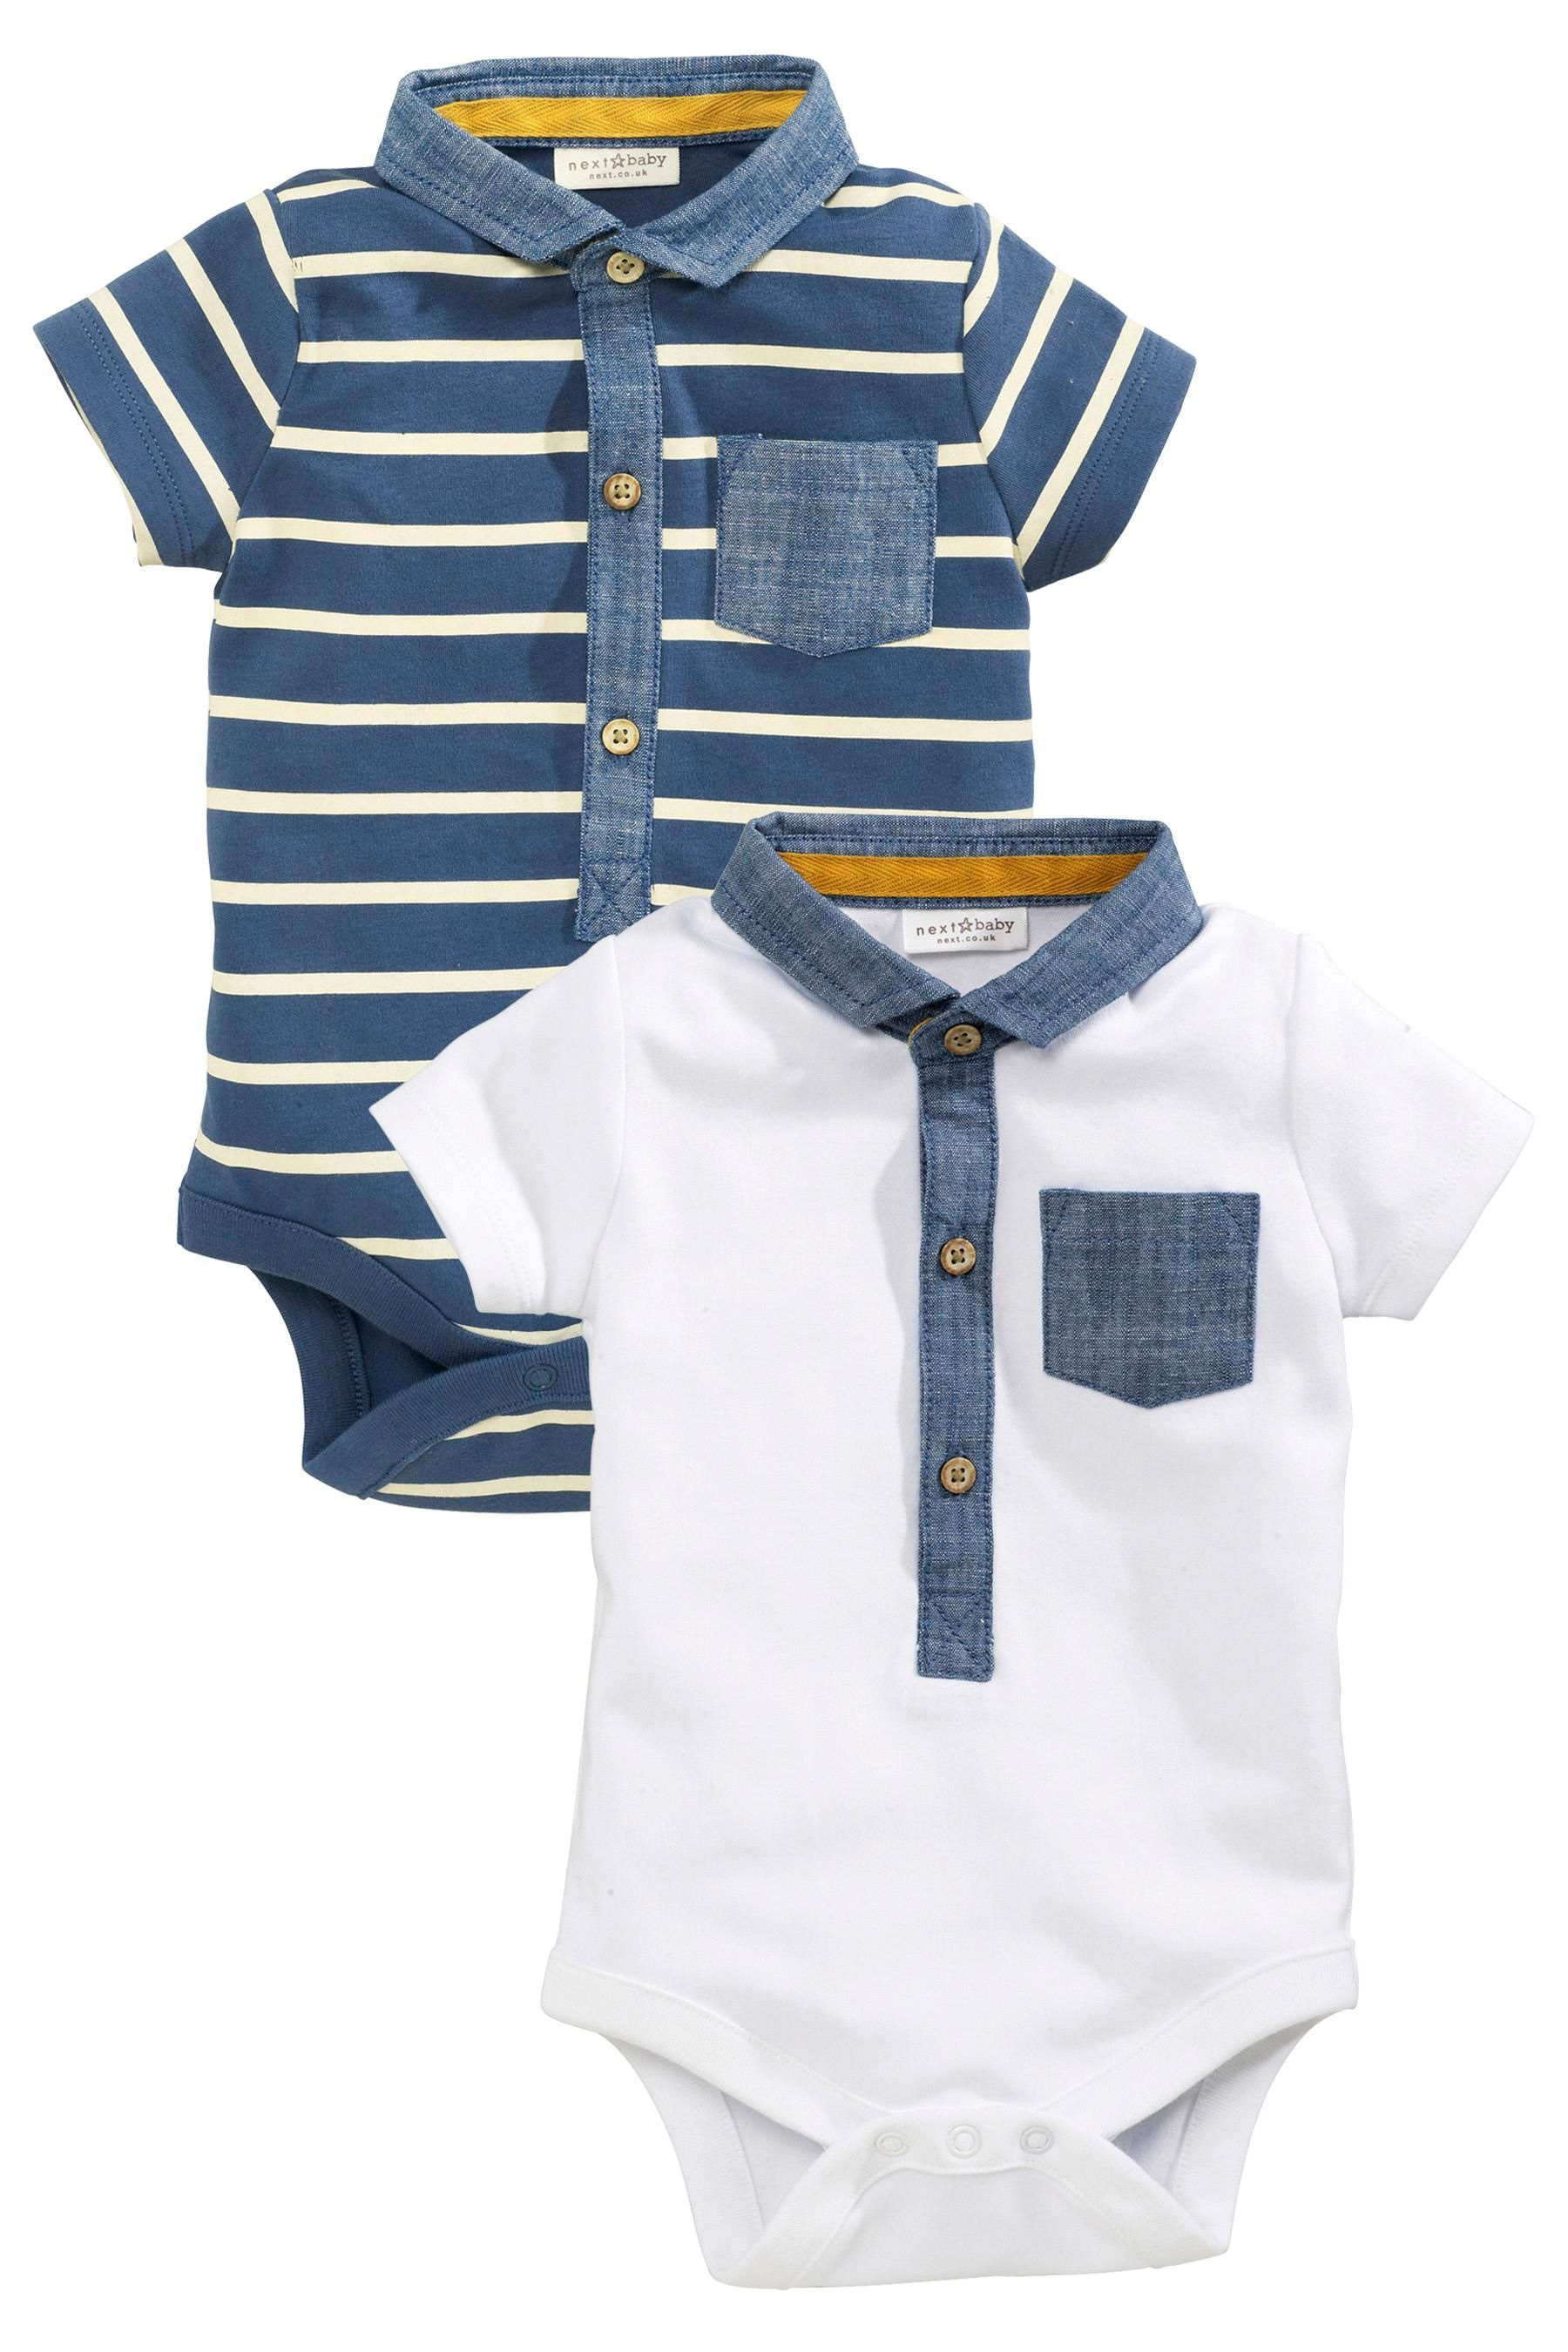 Buy Navy White Polo Bodysuits Two Pack 0mths 2yrs from the Next UK